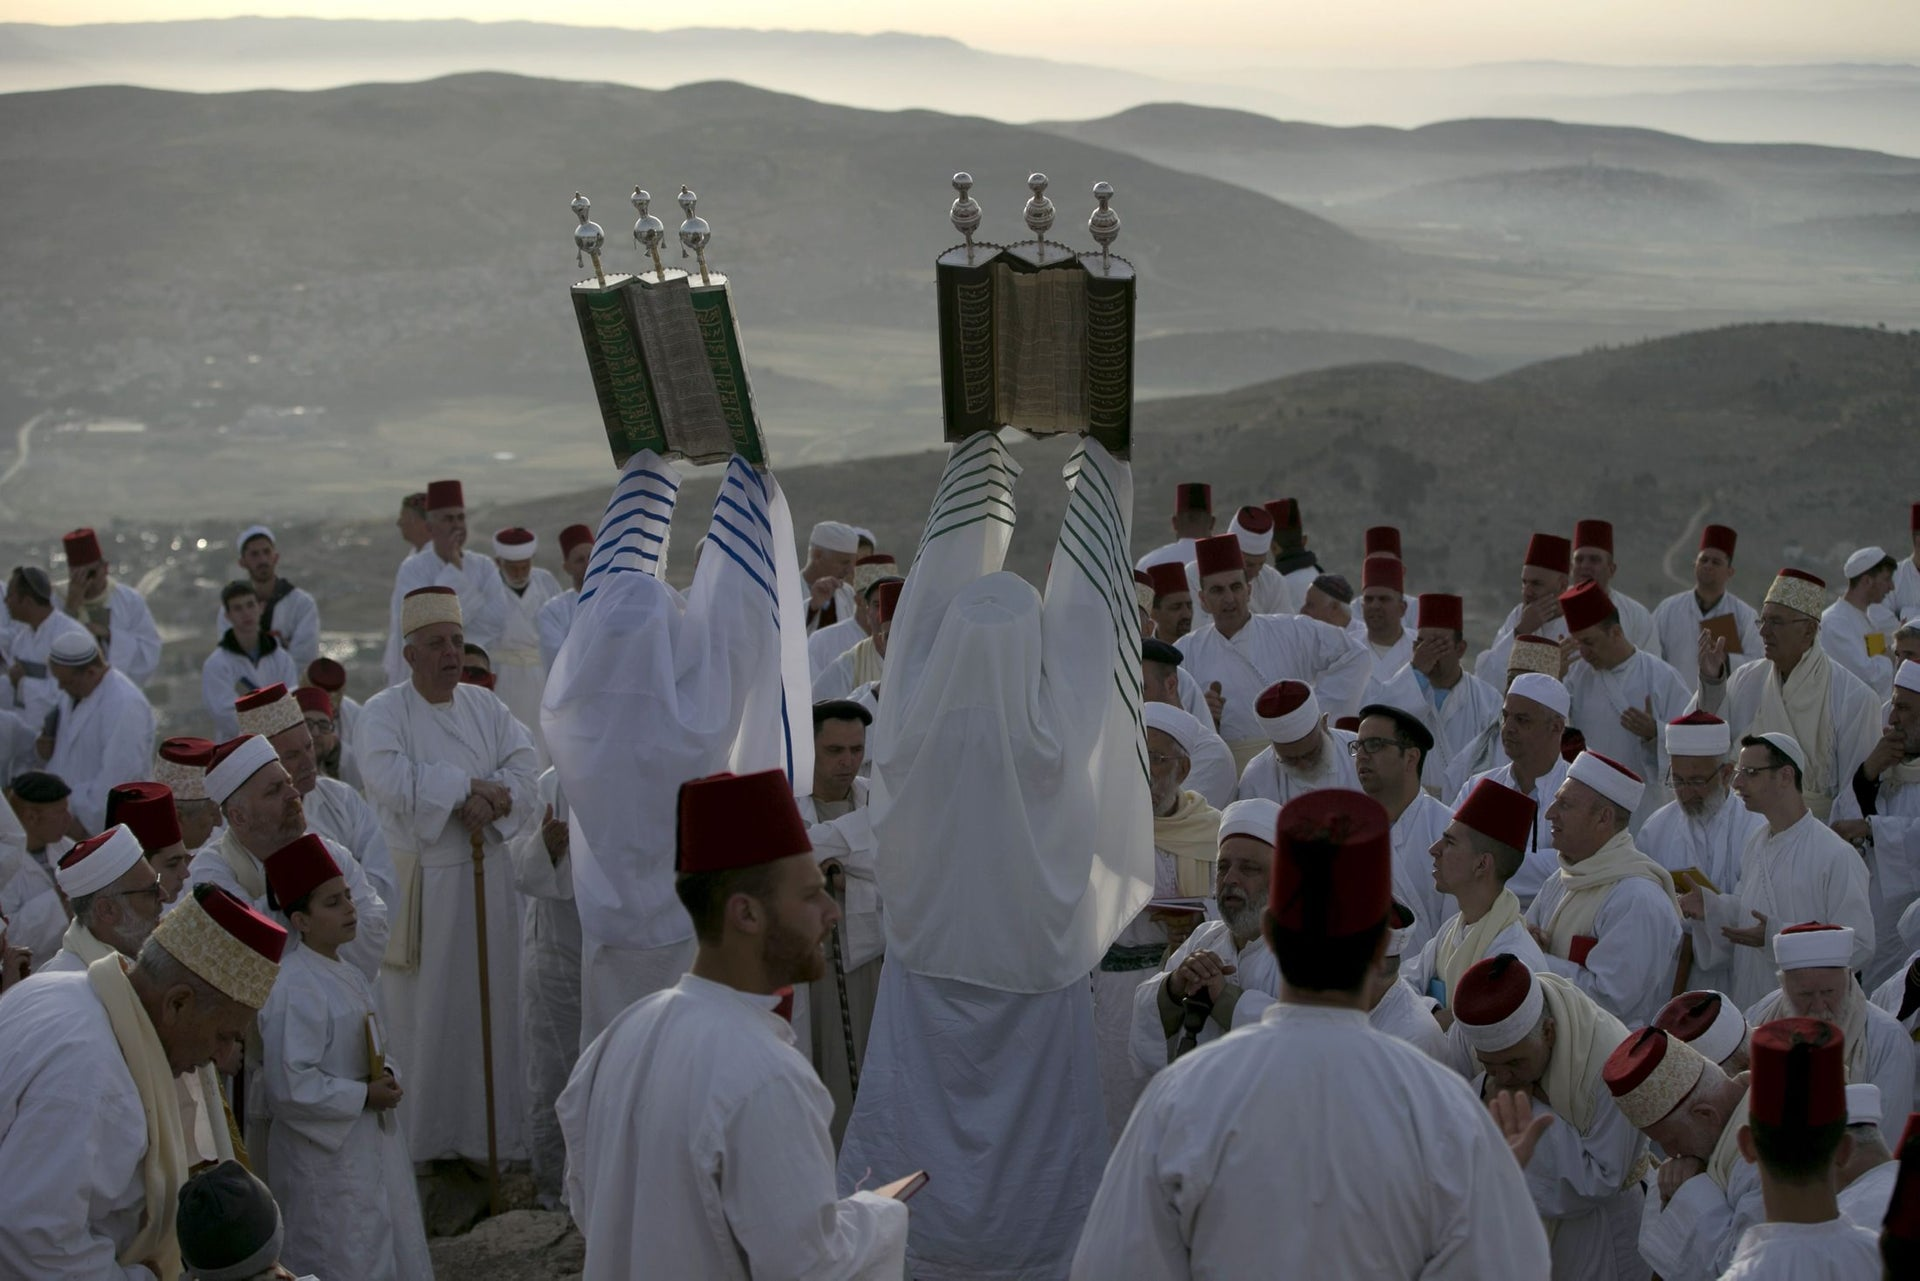 Samaritan worshippers praying during a Passover ceremony on Mount Gerizim, near the West Bank city of Nablus, May 6, 2018.